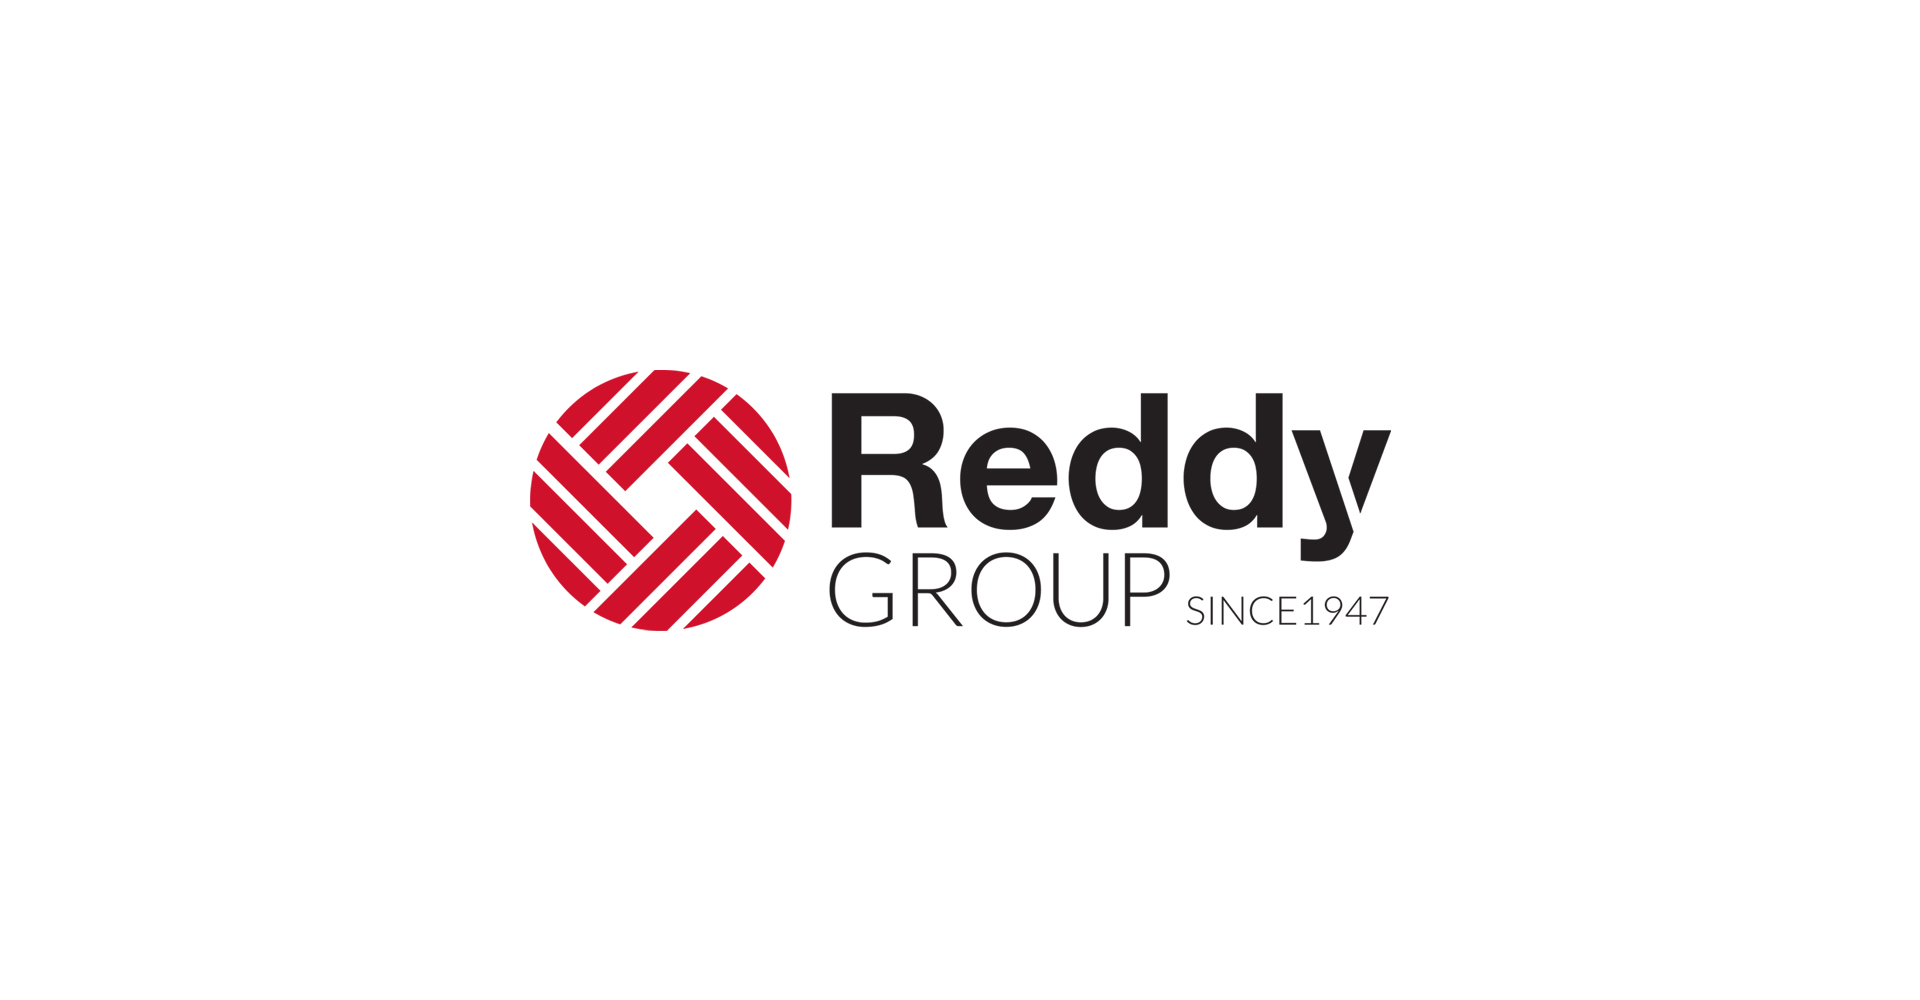 Reddy_group_logo_franchise-marketing_campaign_branding_prodcut_design_digital_marketing_visual_communications_graphic_design_agency_redfire